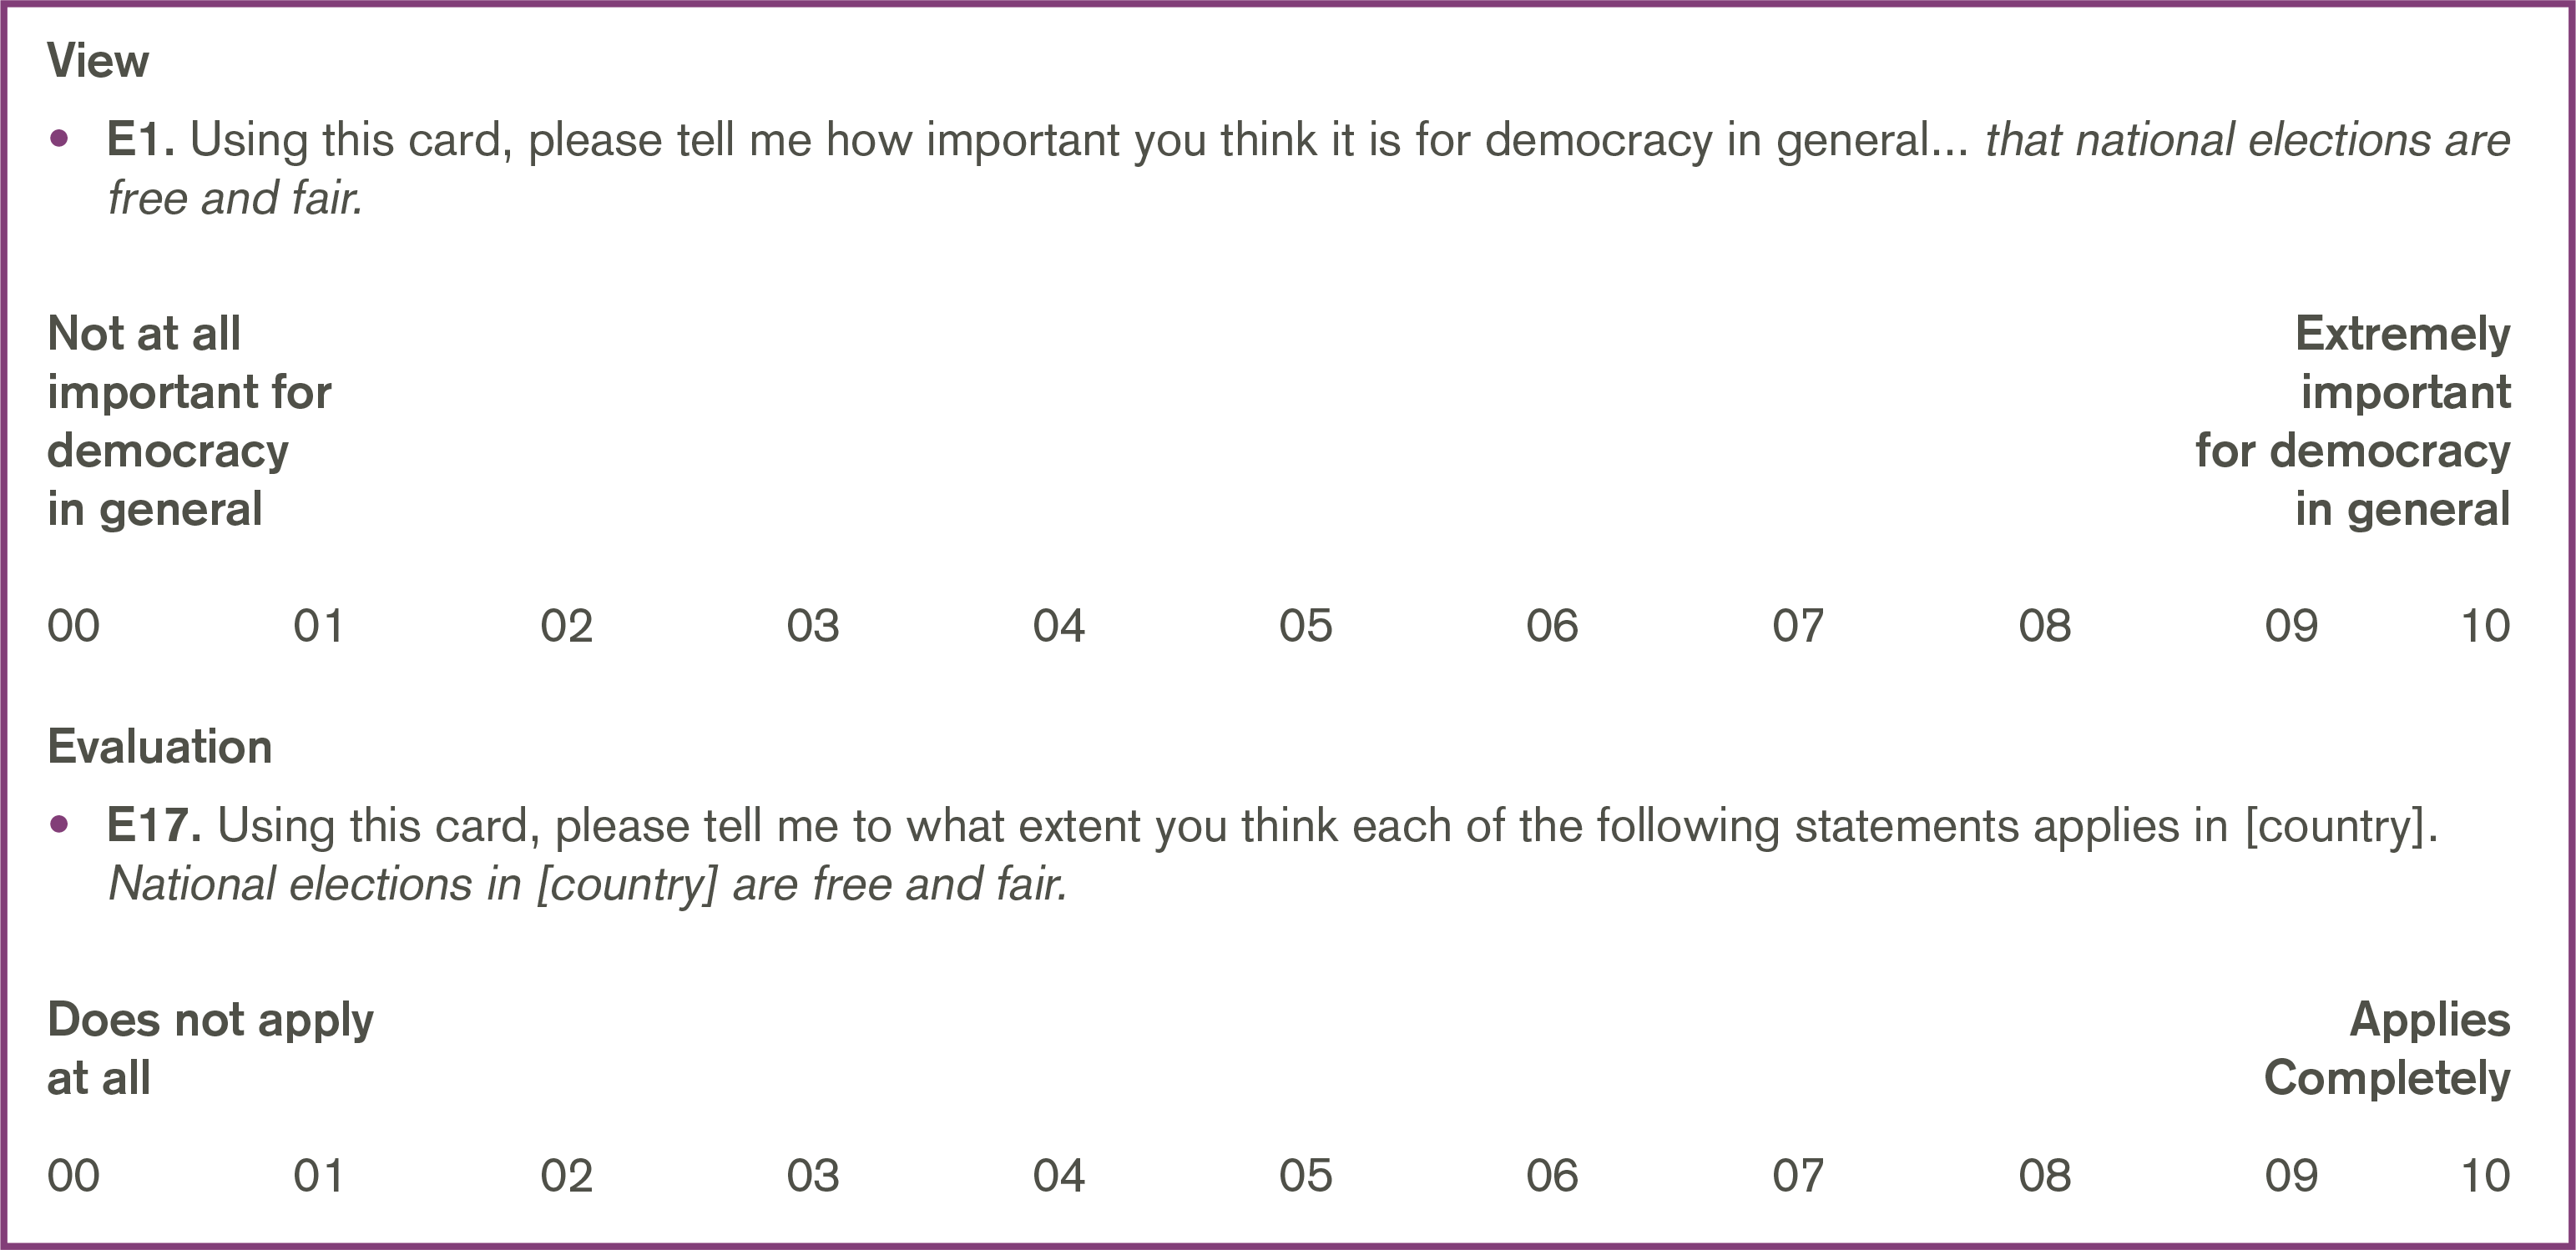 The Three Legitimacy Scales Are Based On An Empirical Classification Of Respondents Views